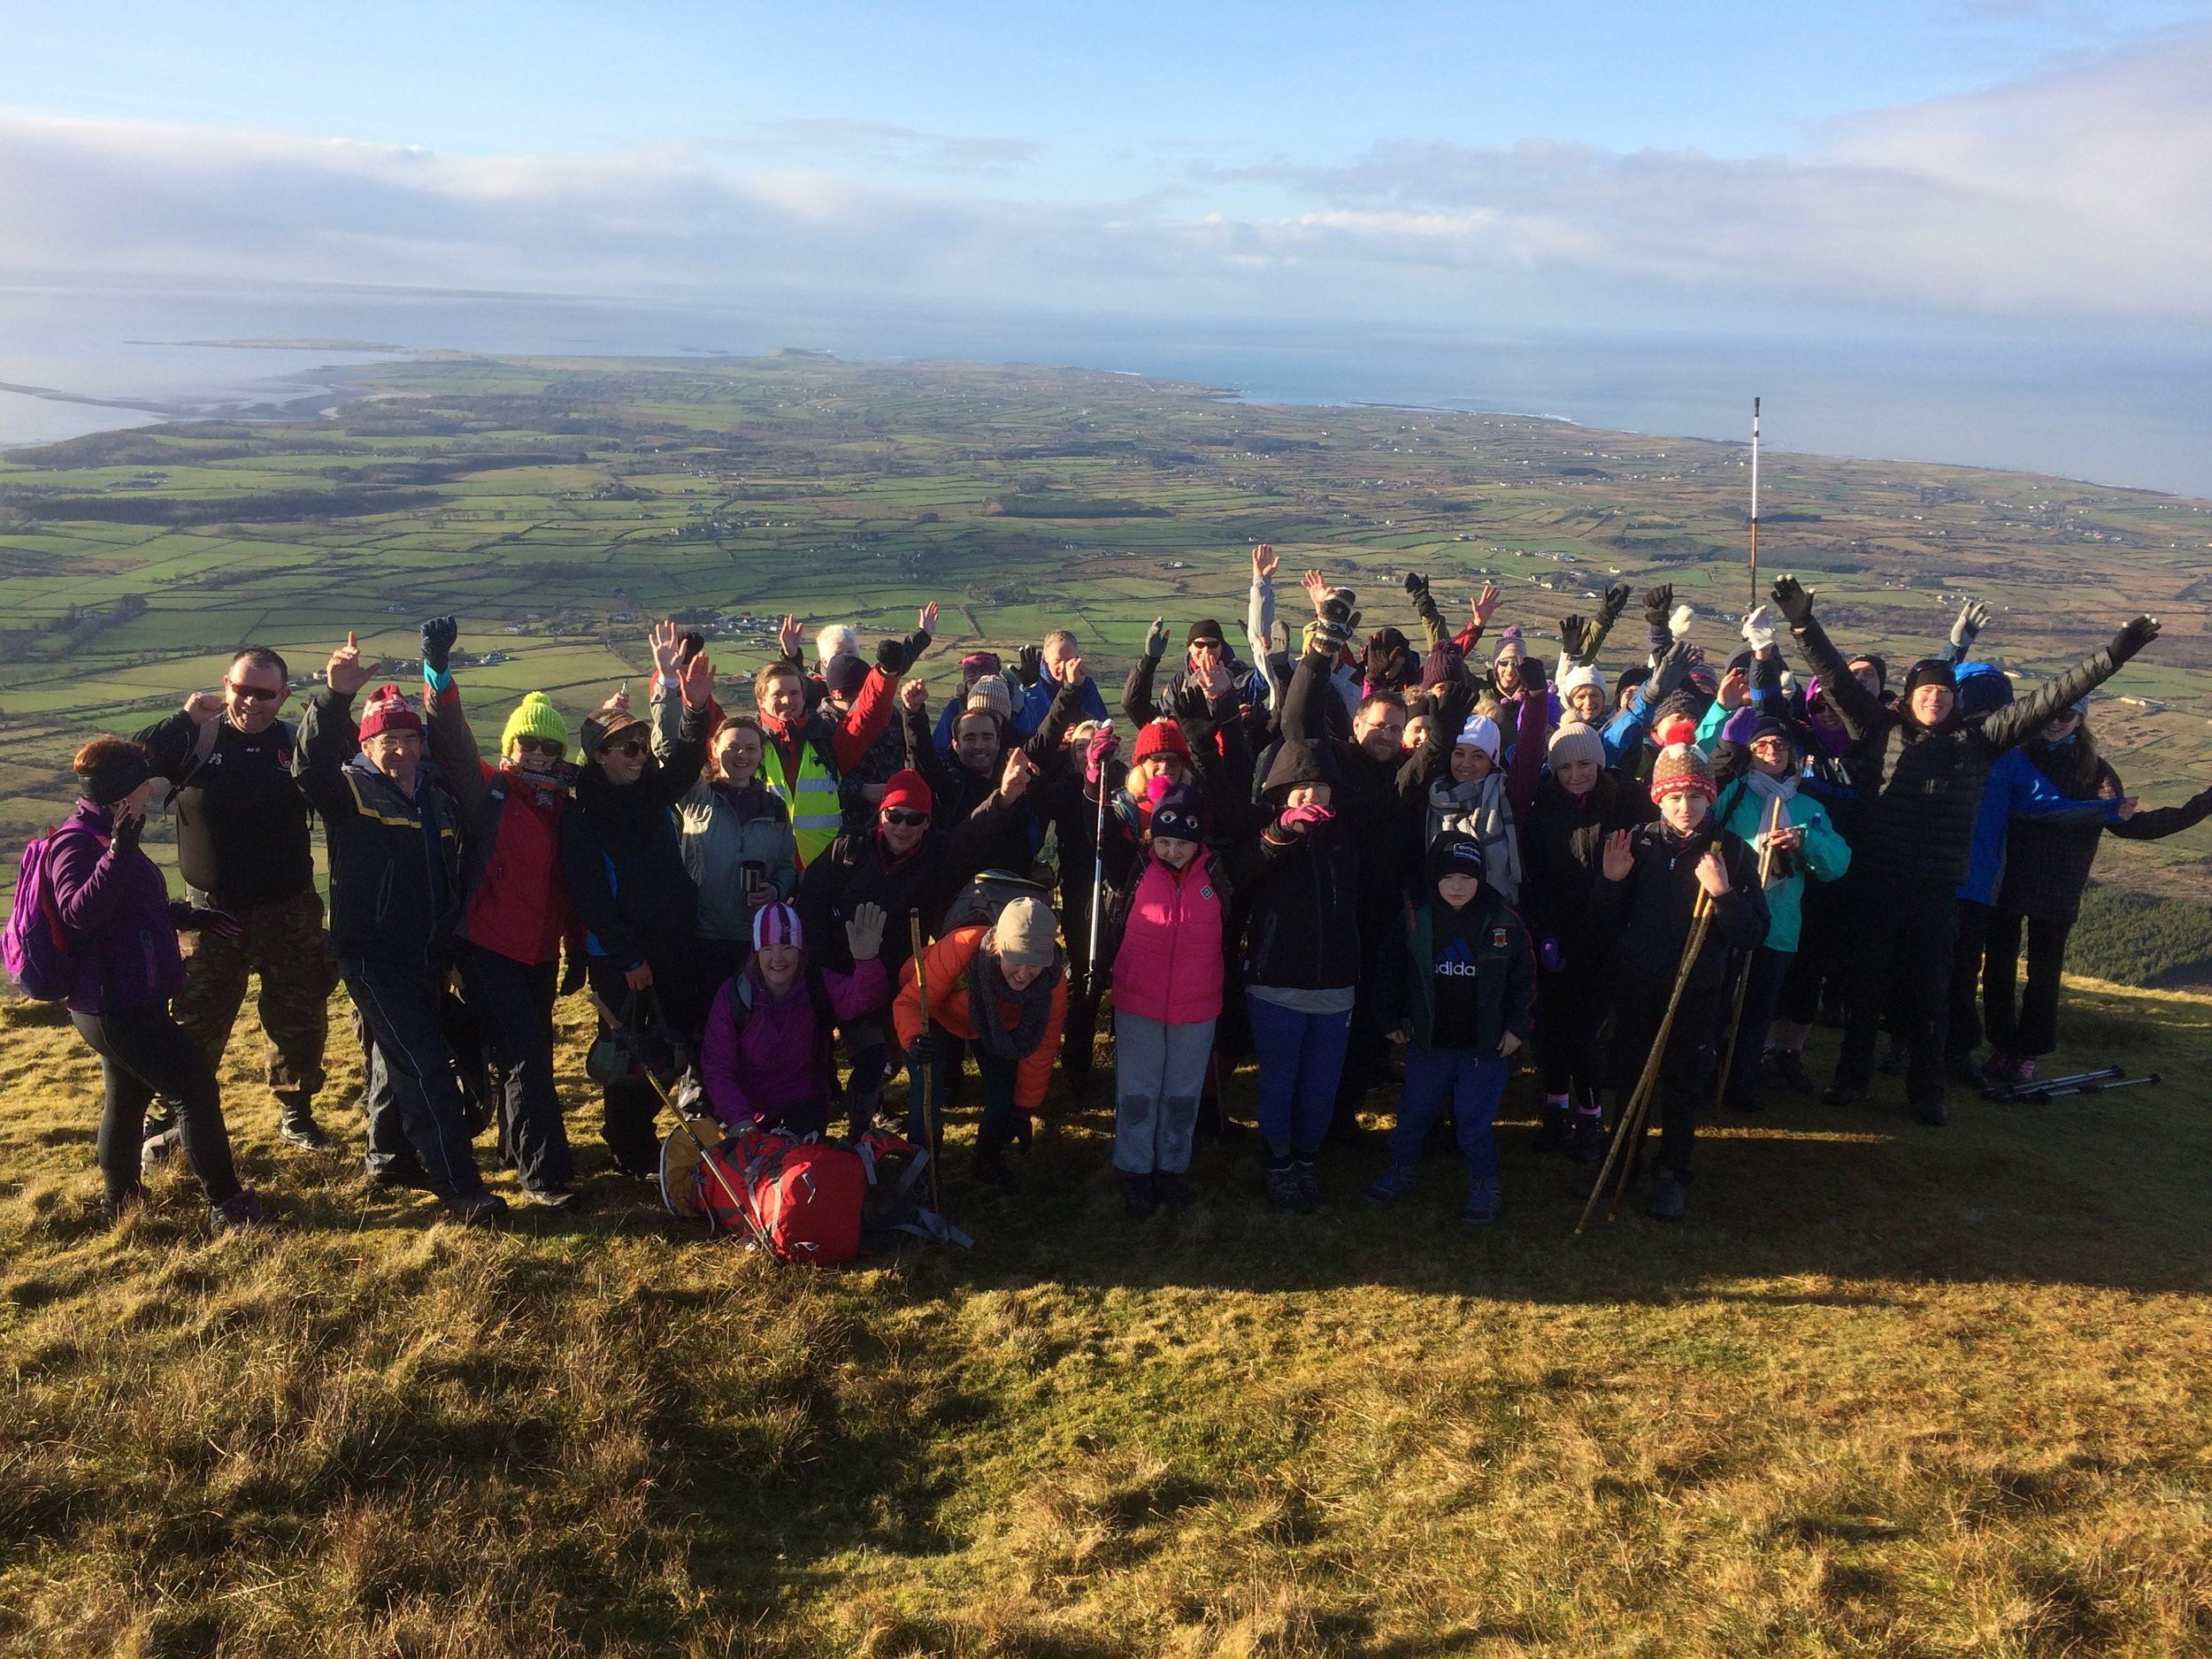 On Monday the 2nd January 2017 a group of 49 hikers climbed Benbulben on a beautiful clear day with lots of winter sunshine. All enjoyed the stunning views and great craic. A great way to blow away the winter blues and we wish all a Happy New Year.